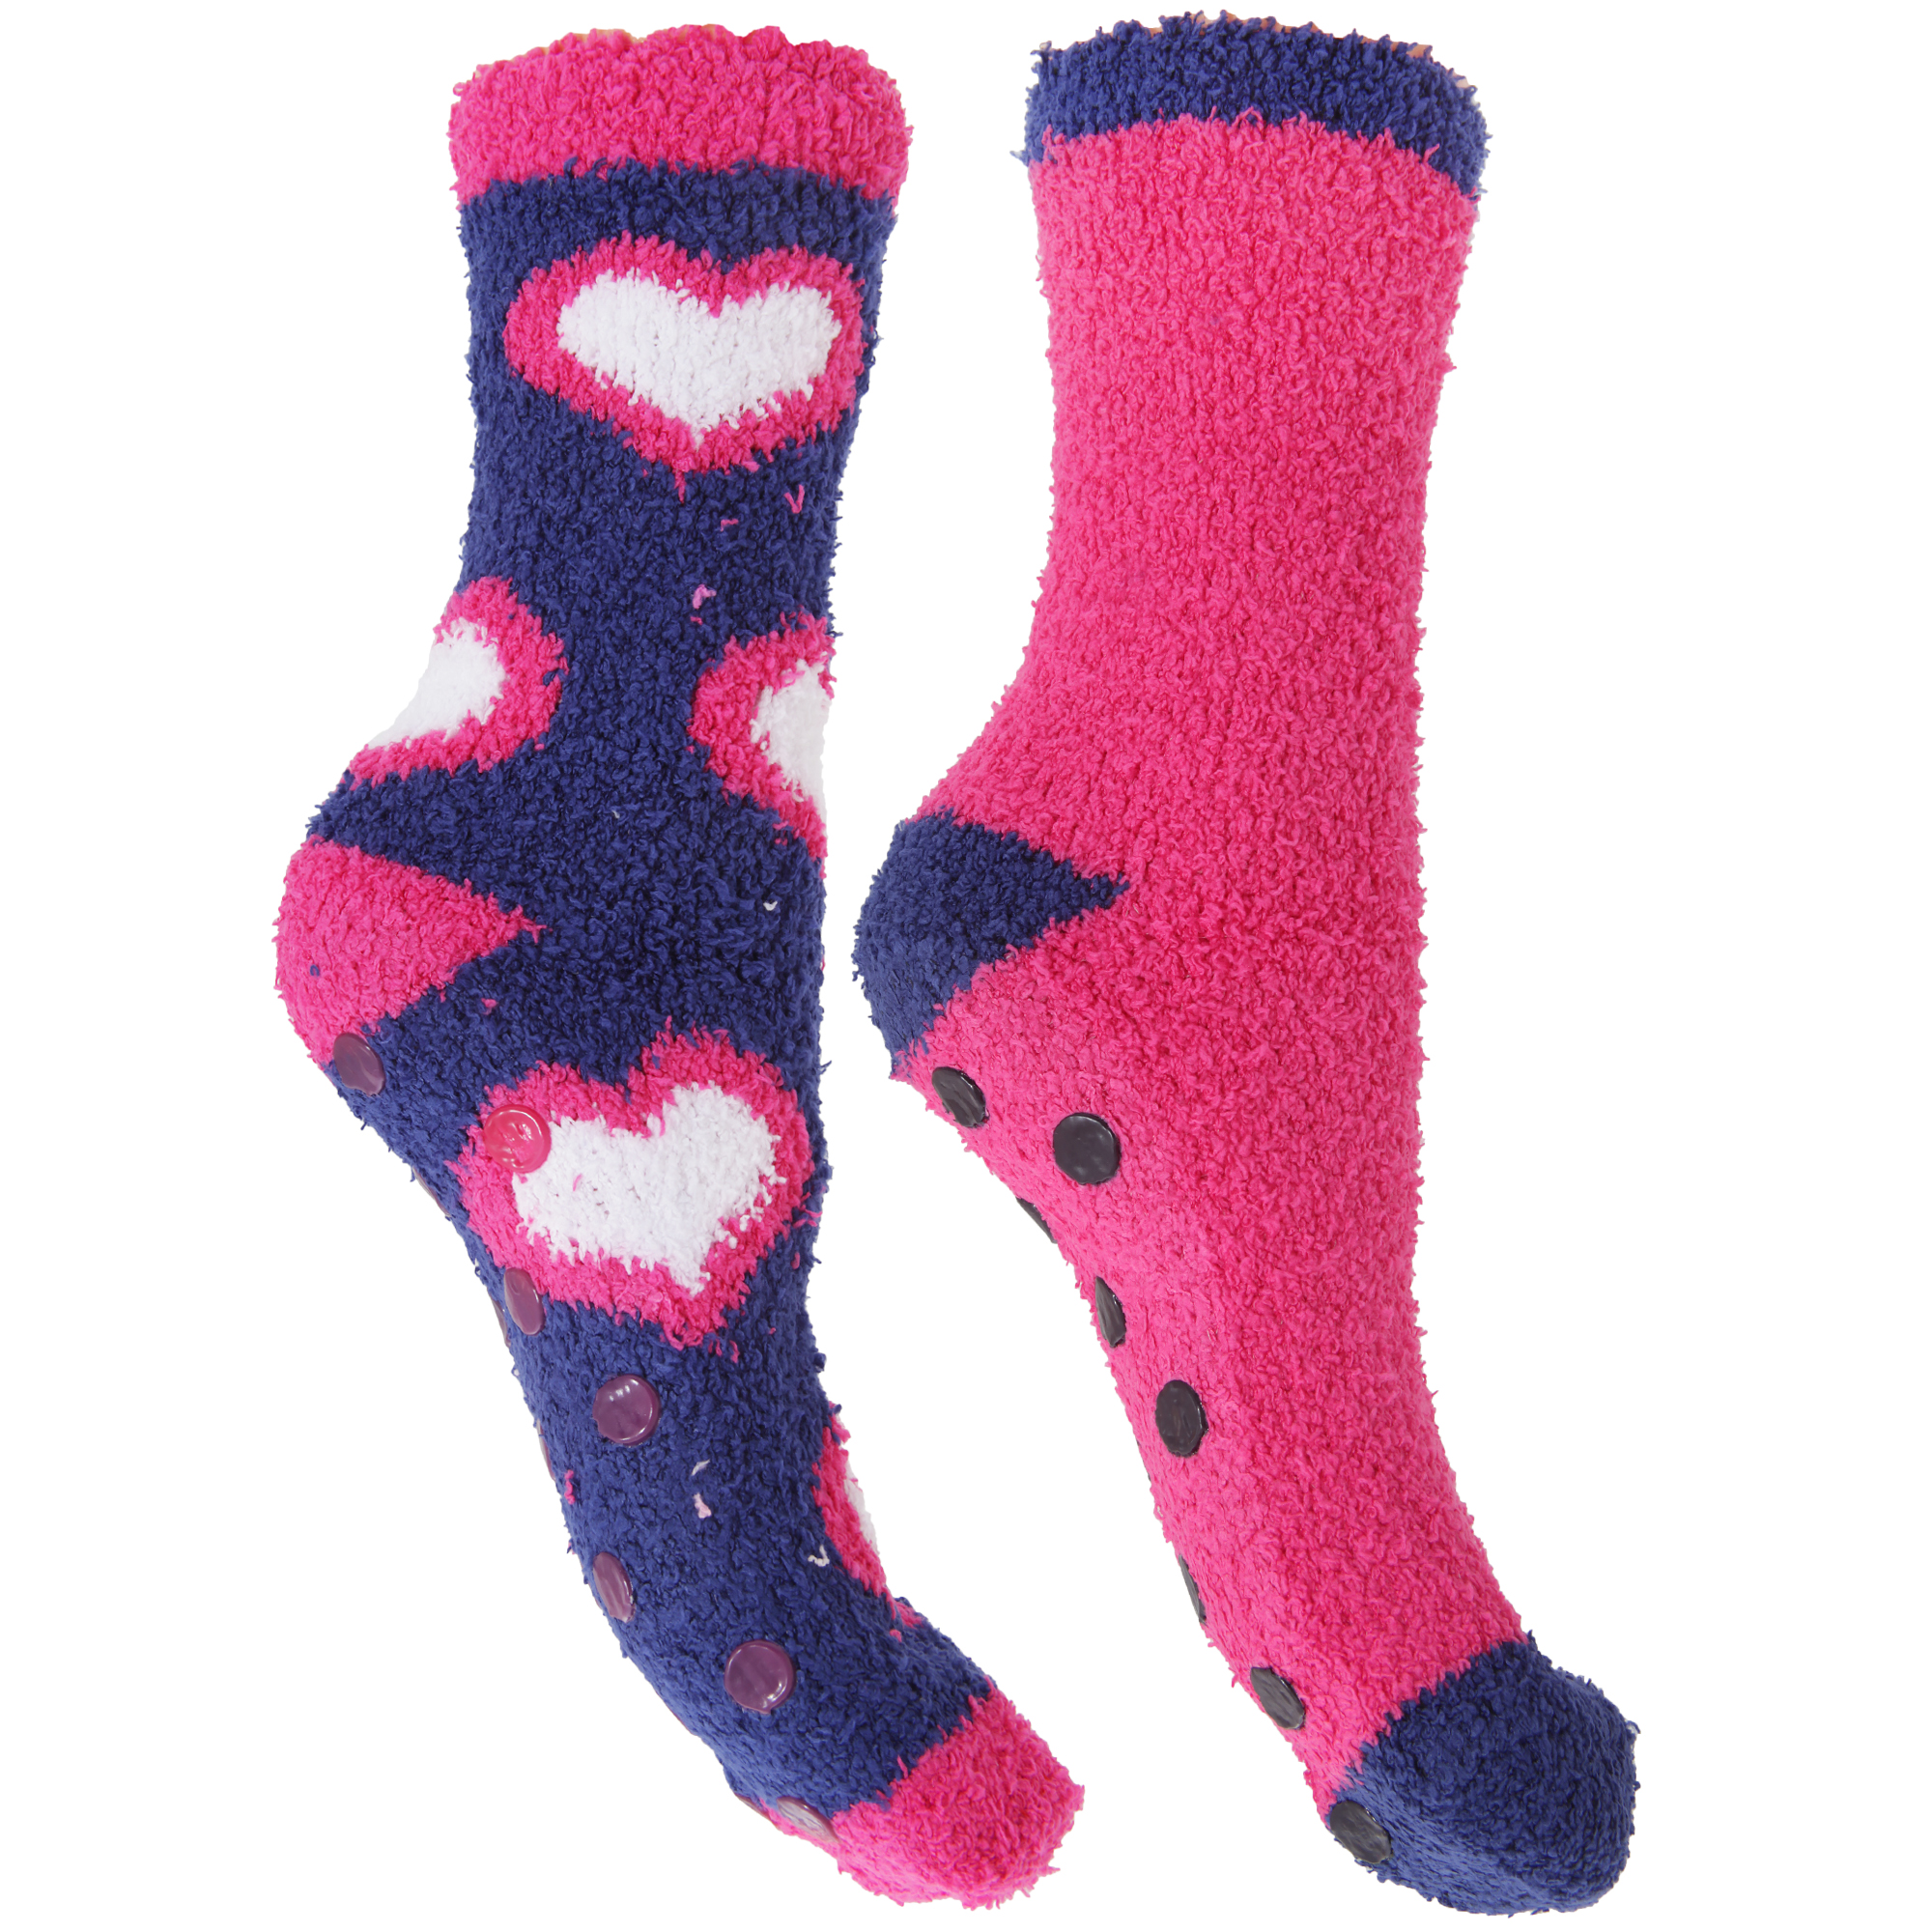 Womens Slipper Socks With Grips - 28 Images - 2 Pairs ...